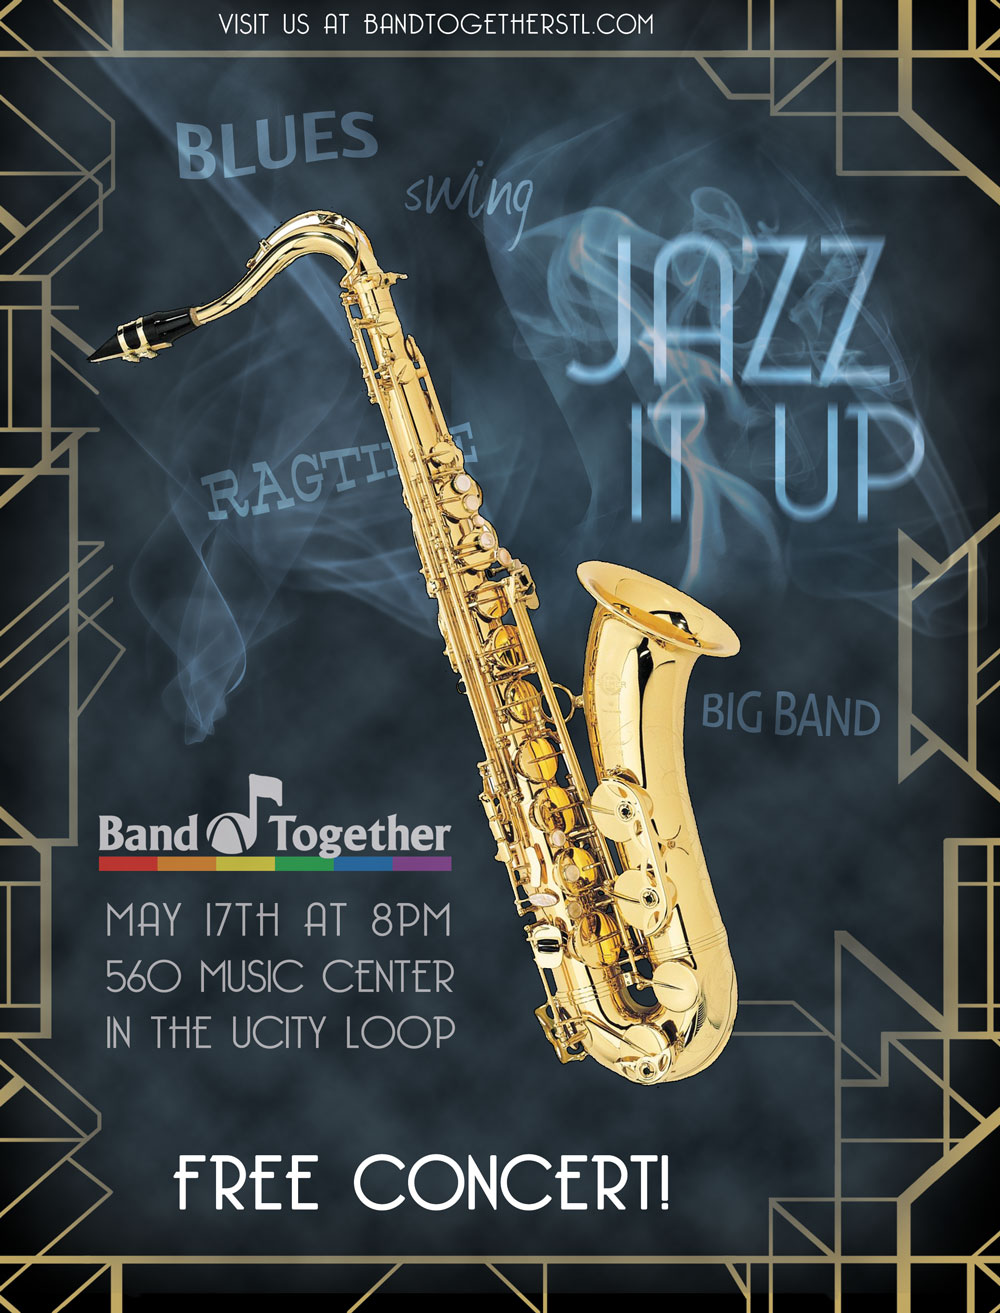 Jazz Concert Program Flyer Graphic Design Projects